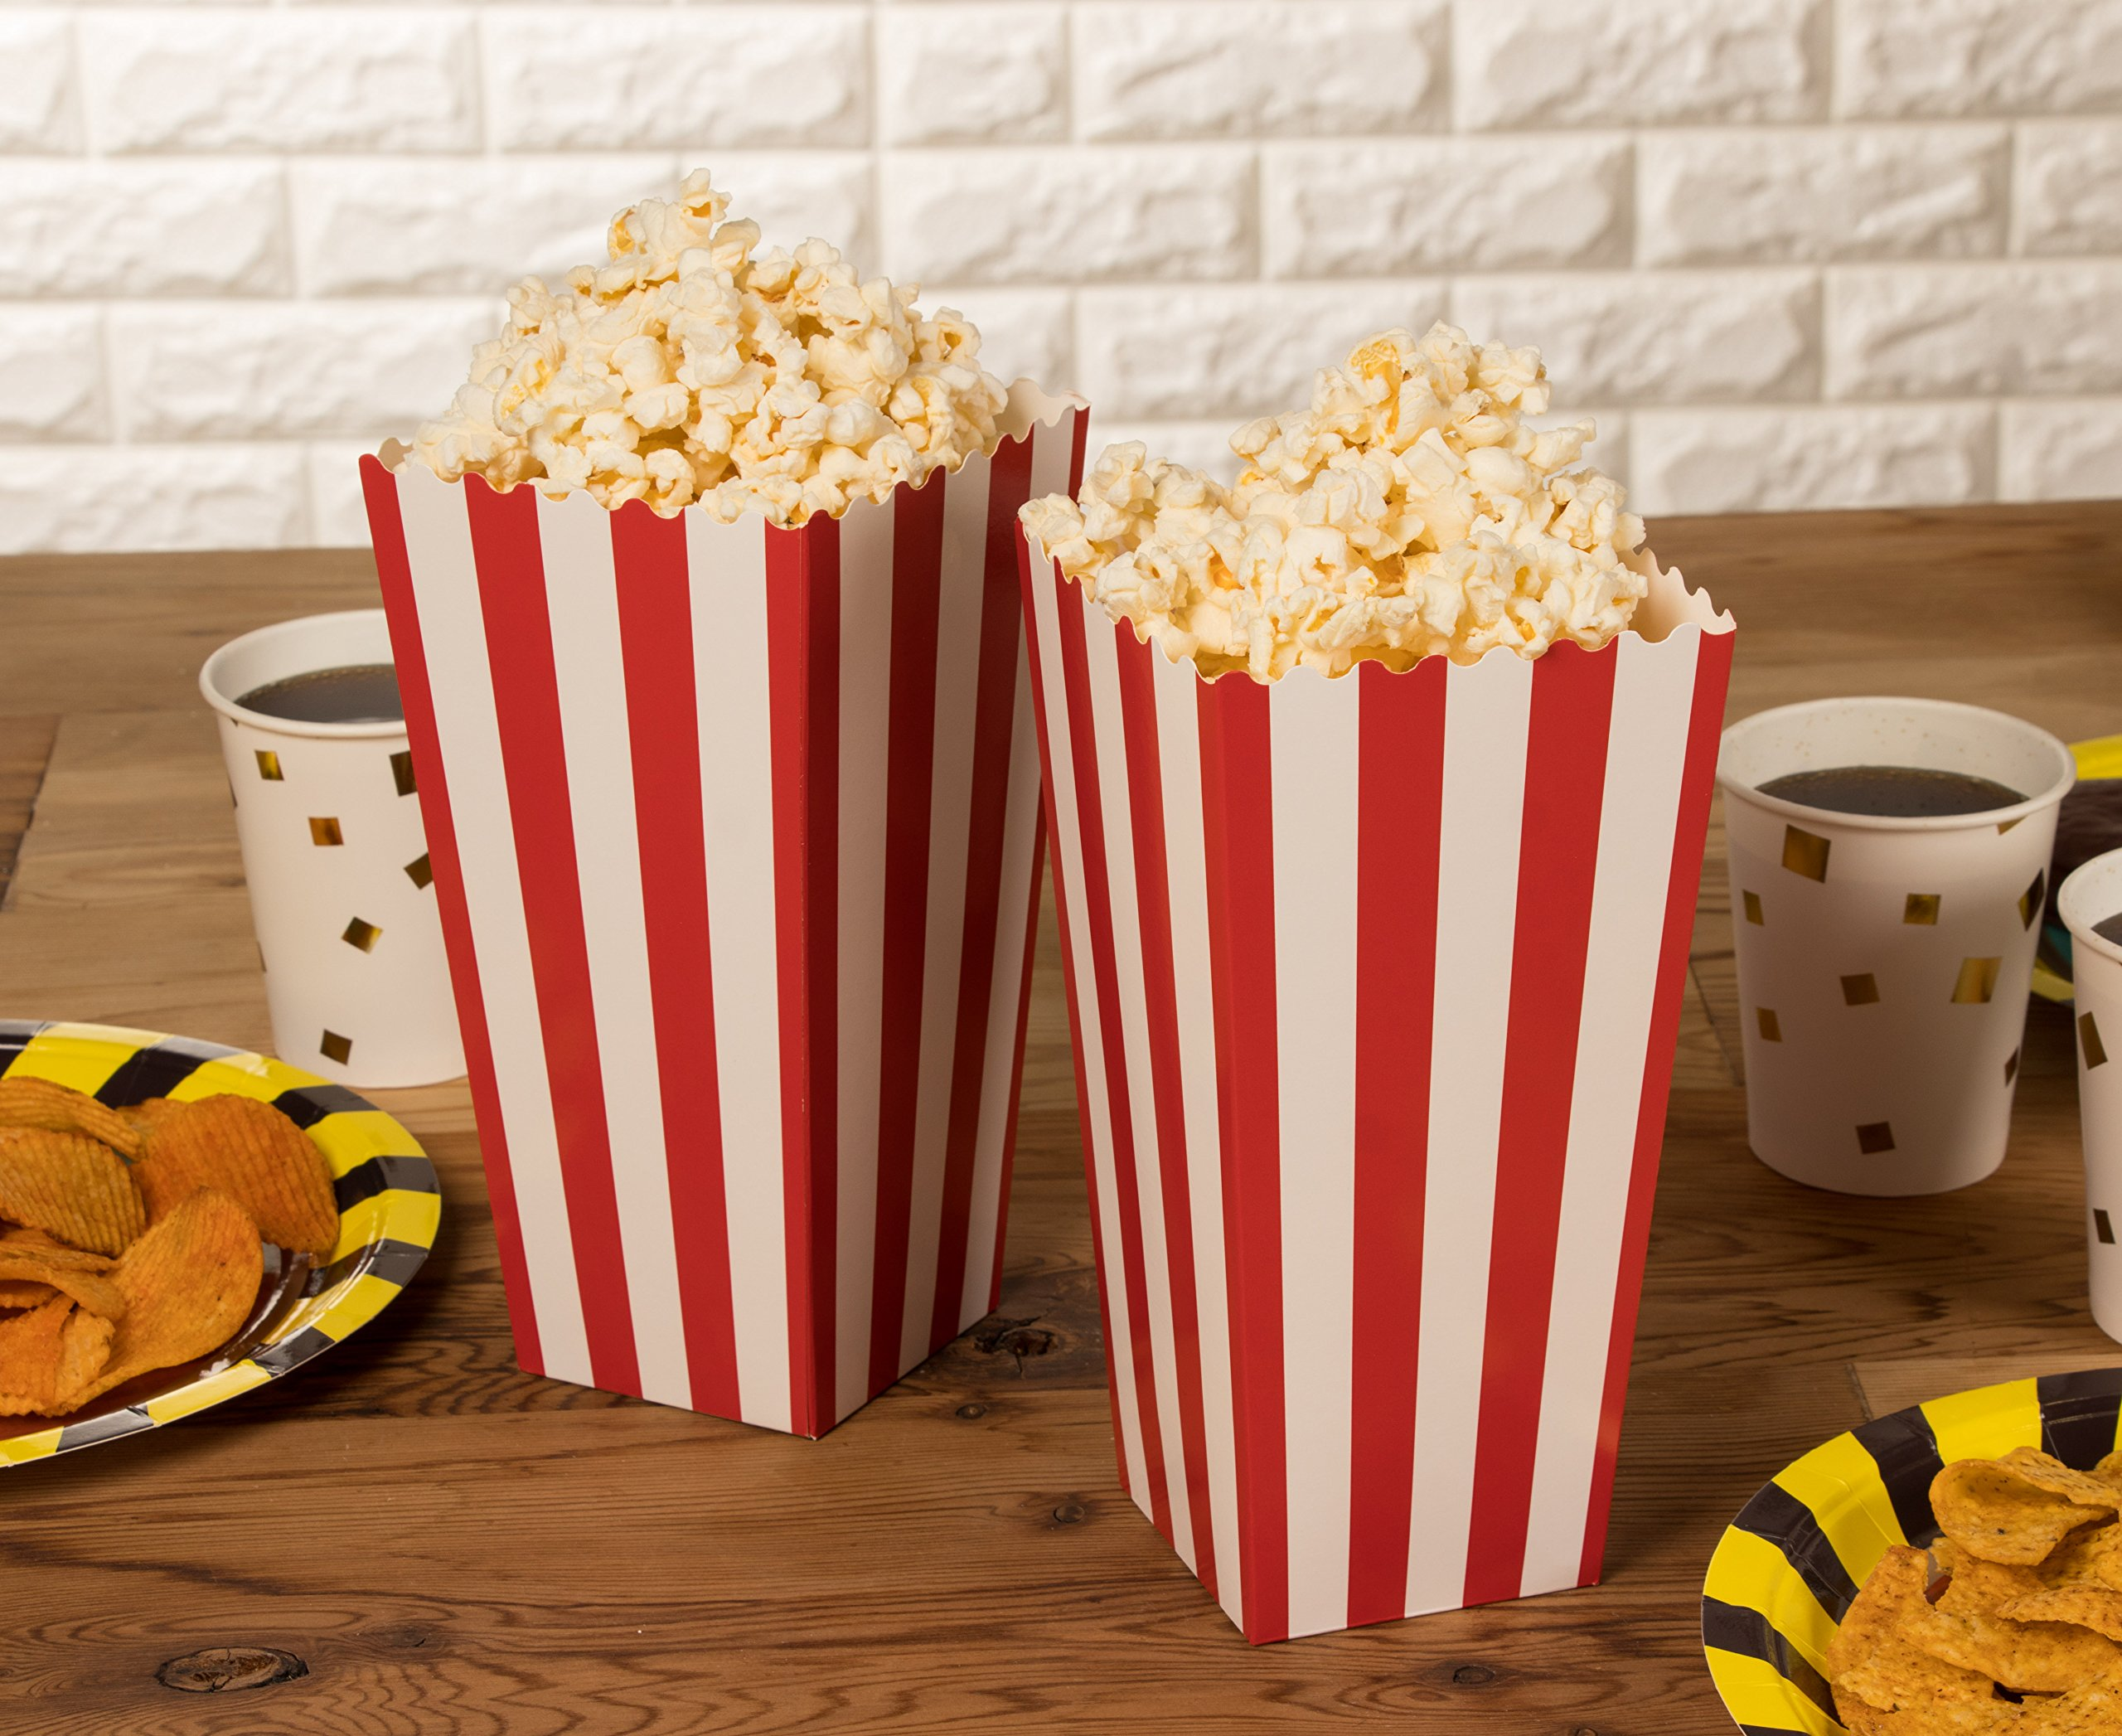 Set of 100 Popcorn Favor Boxes - Paper Popcorn Containers, Popcorn Party Supplies for Movie Nights, Movie-Themed Parties, Carnival Parties, Pirate Party, Red and White - 3.7 x 7.8 x 3.7 Inches by Blue Panda (Image #8)